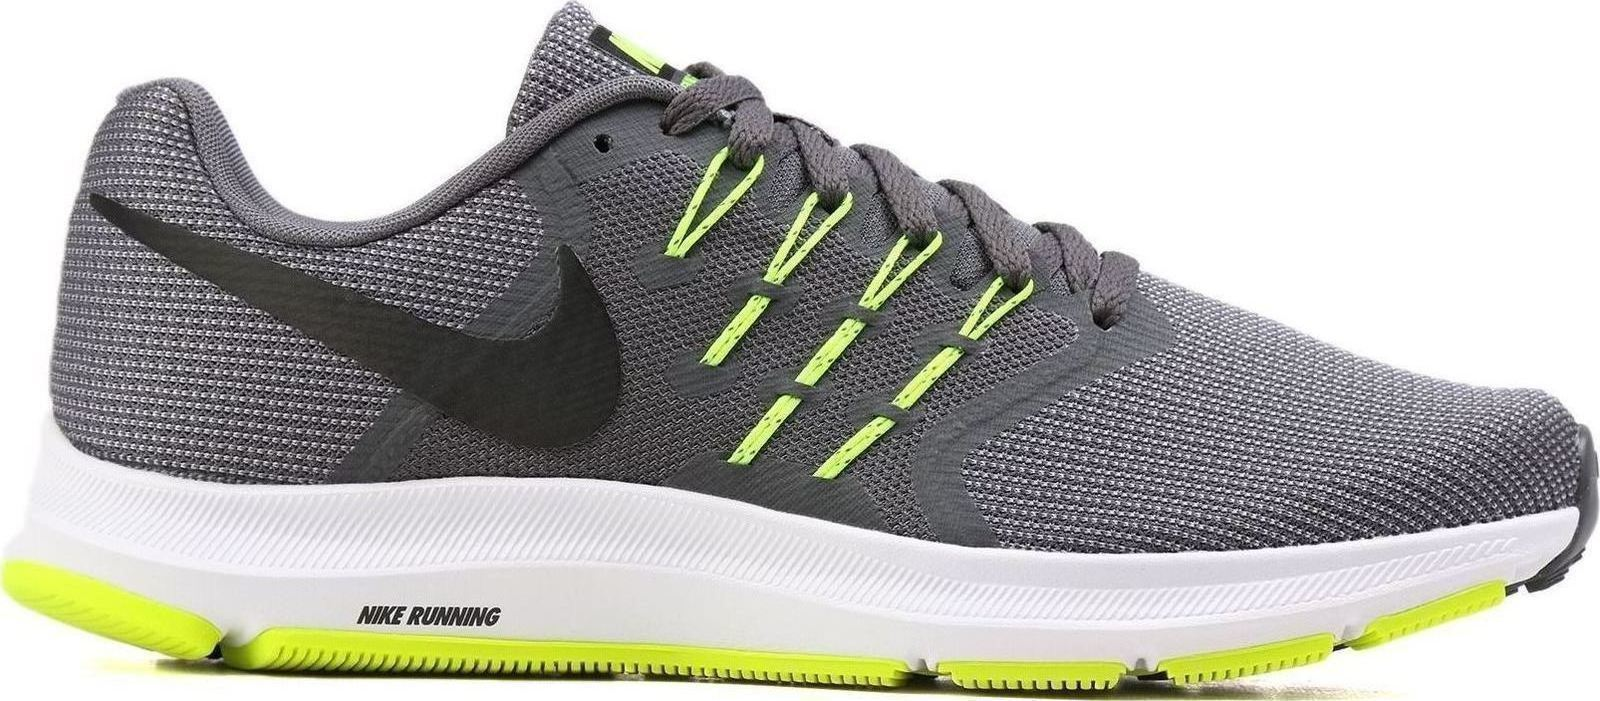 Review: Nike Run Swift – Sun and Sole